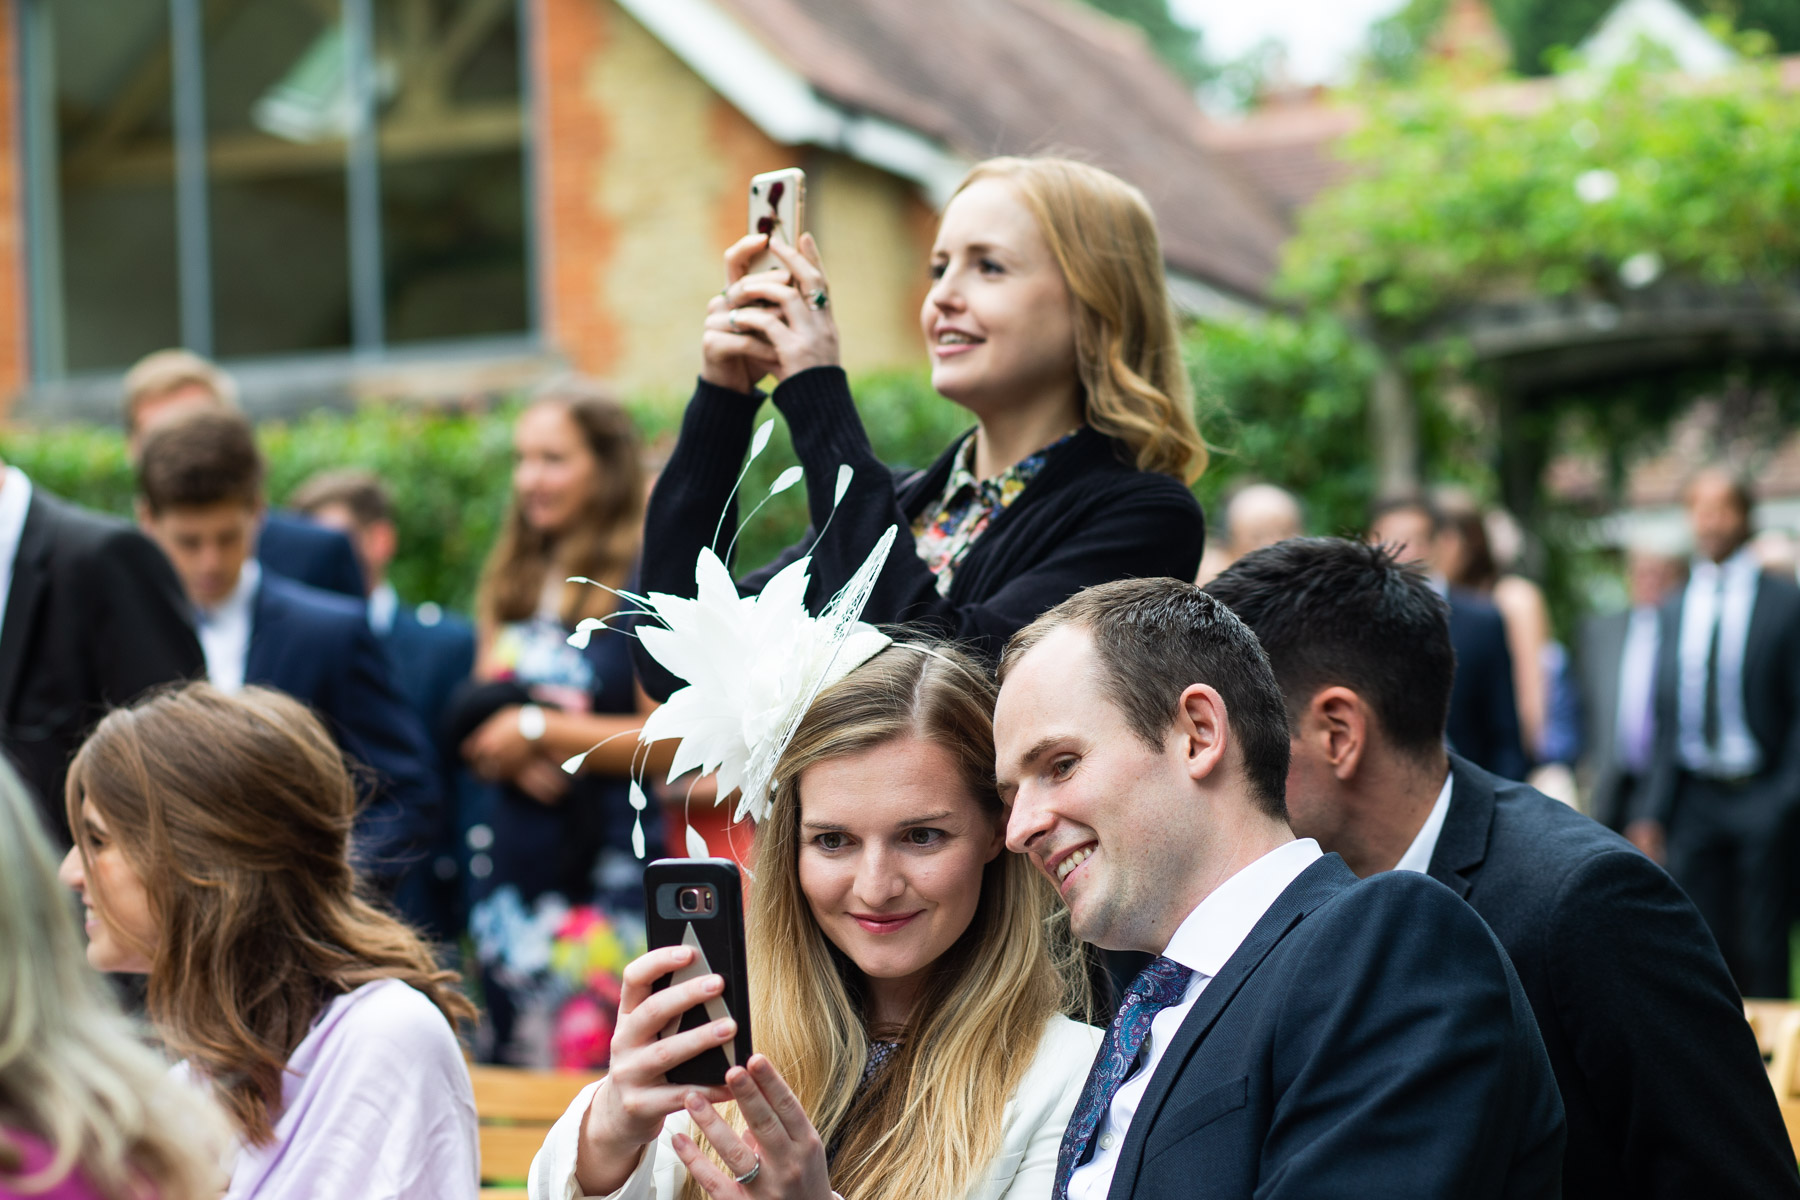 Guest taking a photo at wedding ceremony